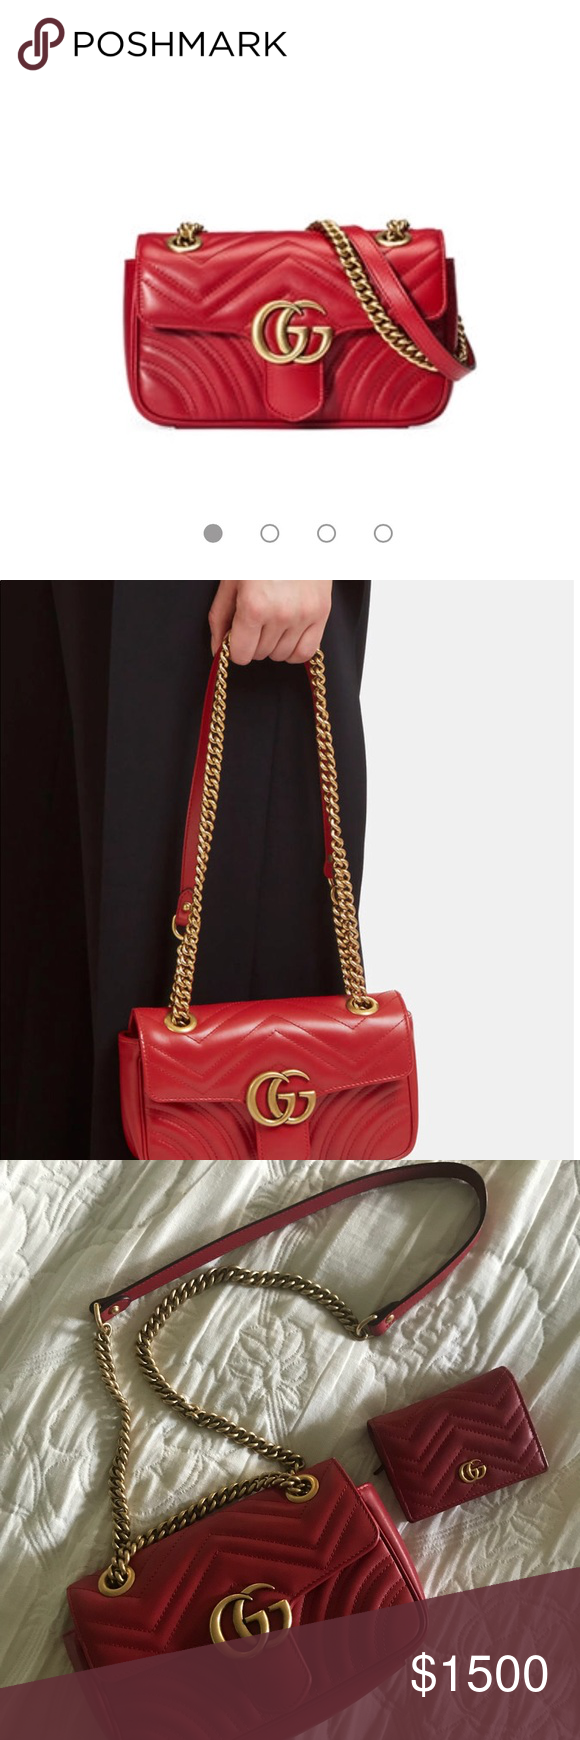 91af07943 Gucci GG Marmont mini bag in hibiscus red Gucci's classic GG Marmont  Matelassé Mini Chain Shoulder Bag with antique gold double GG hardware,  rear stitched ...